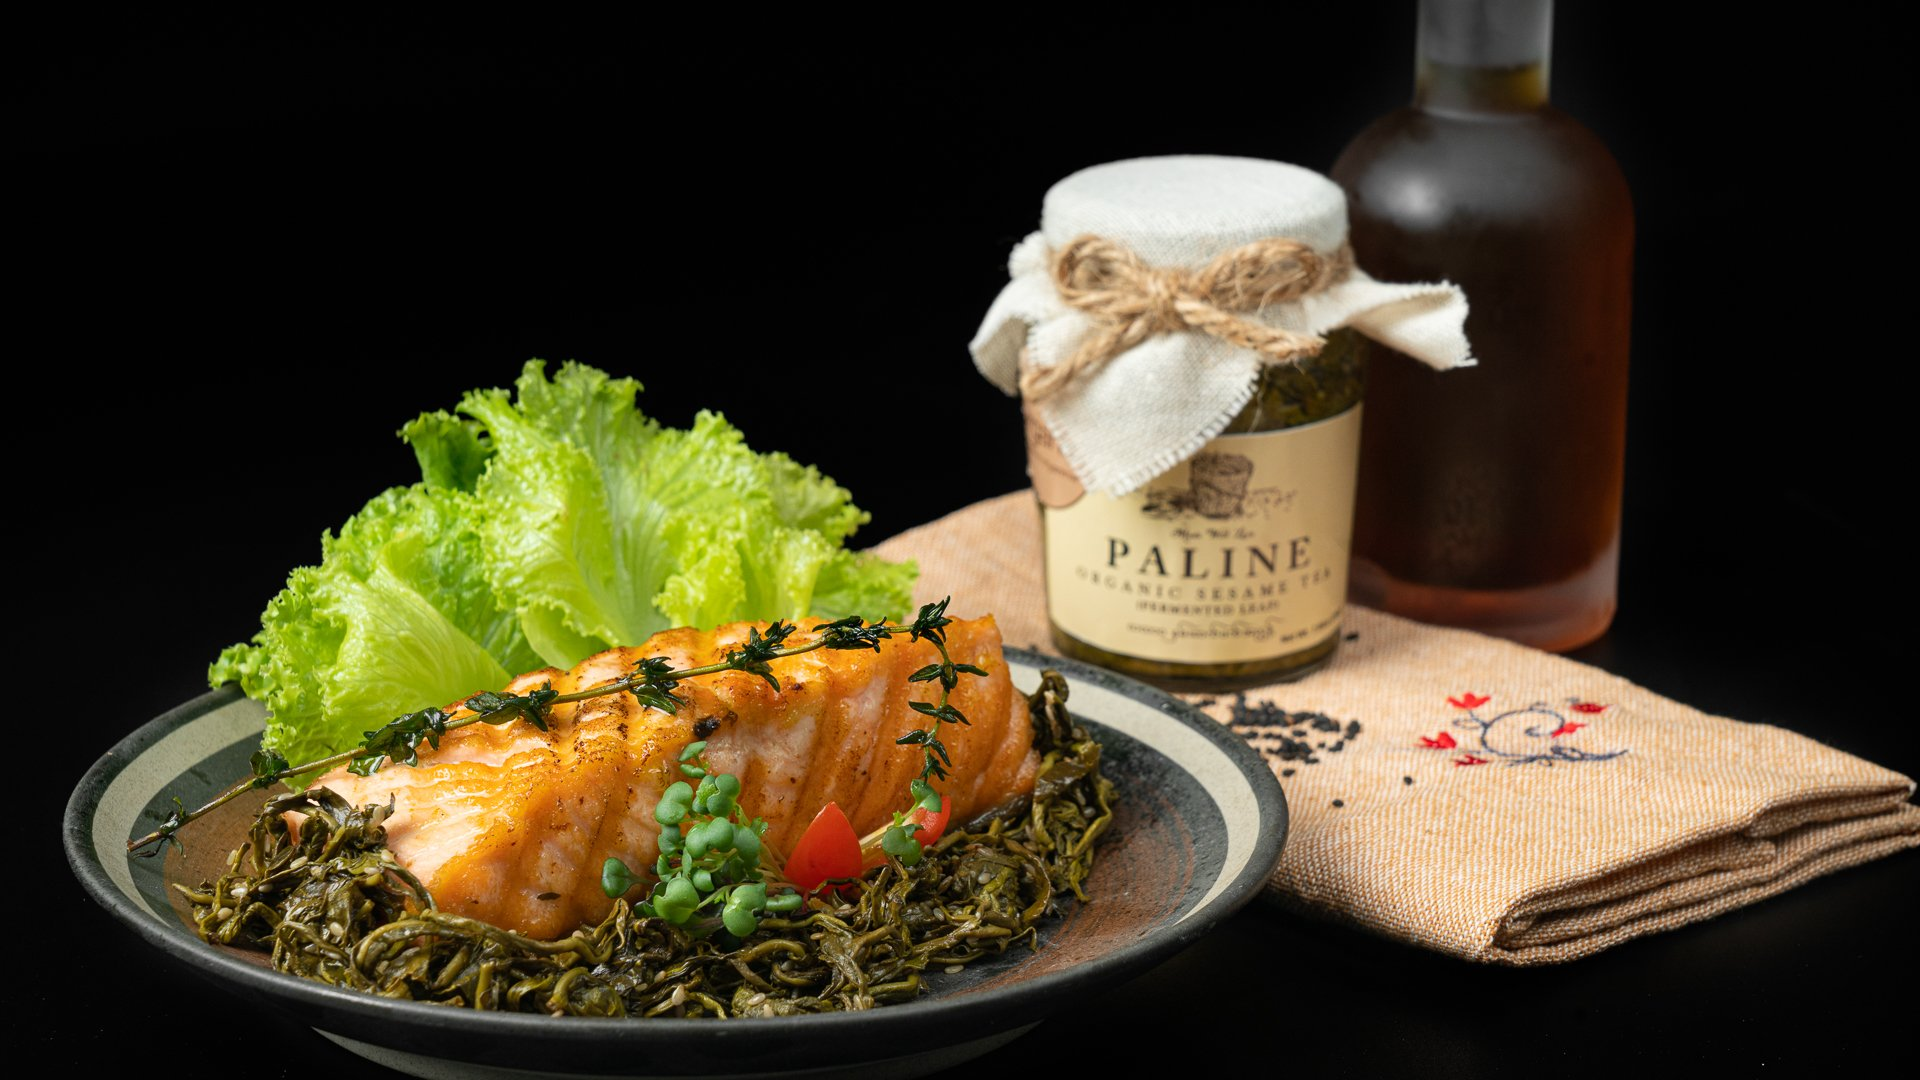 Grilled fish with Paline organic fermented tea leaves